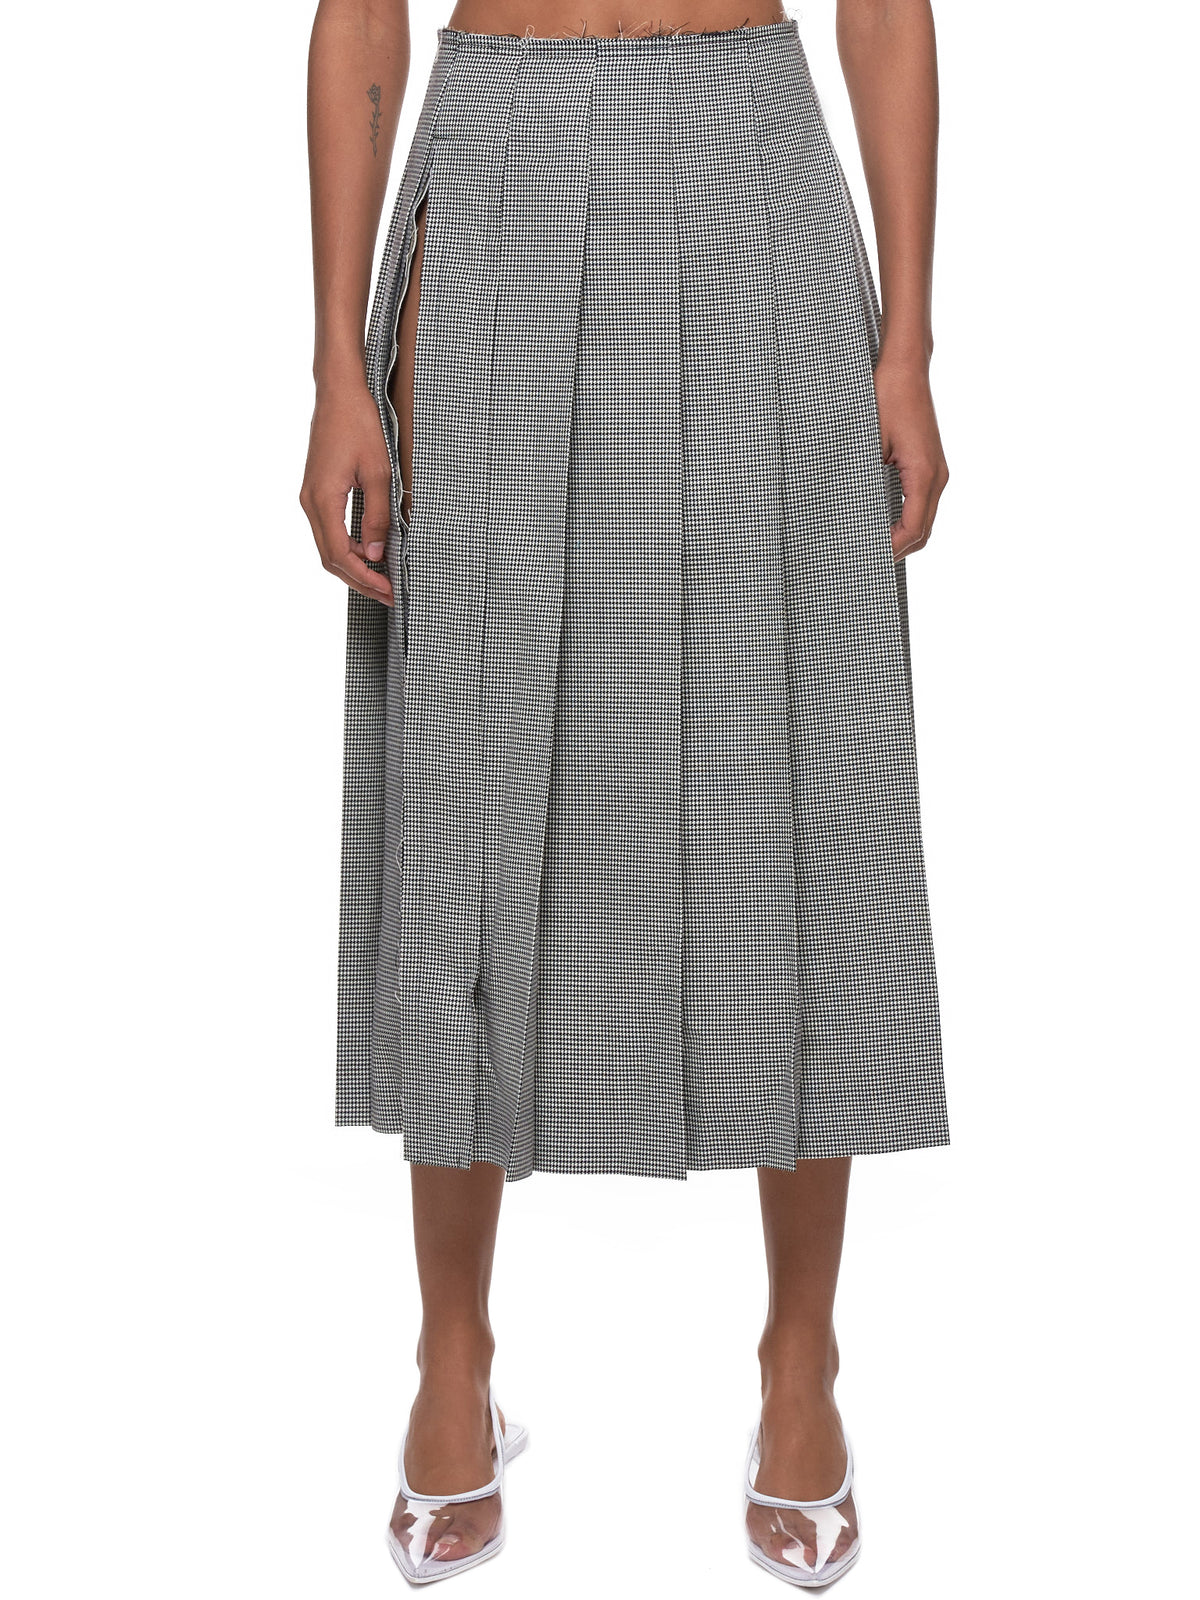 Houndstooth Skirt (GC-S003-051-HOUNDSTOOTH-CHECK)